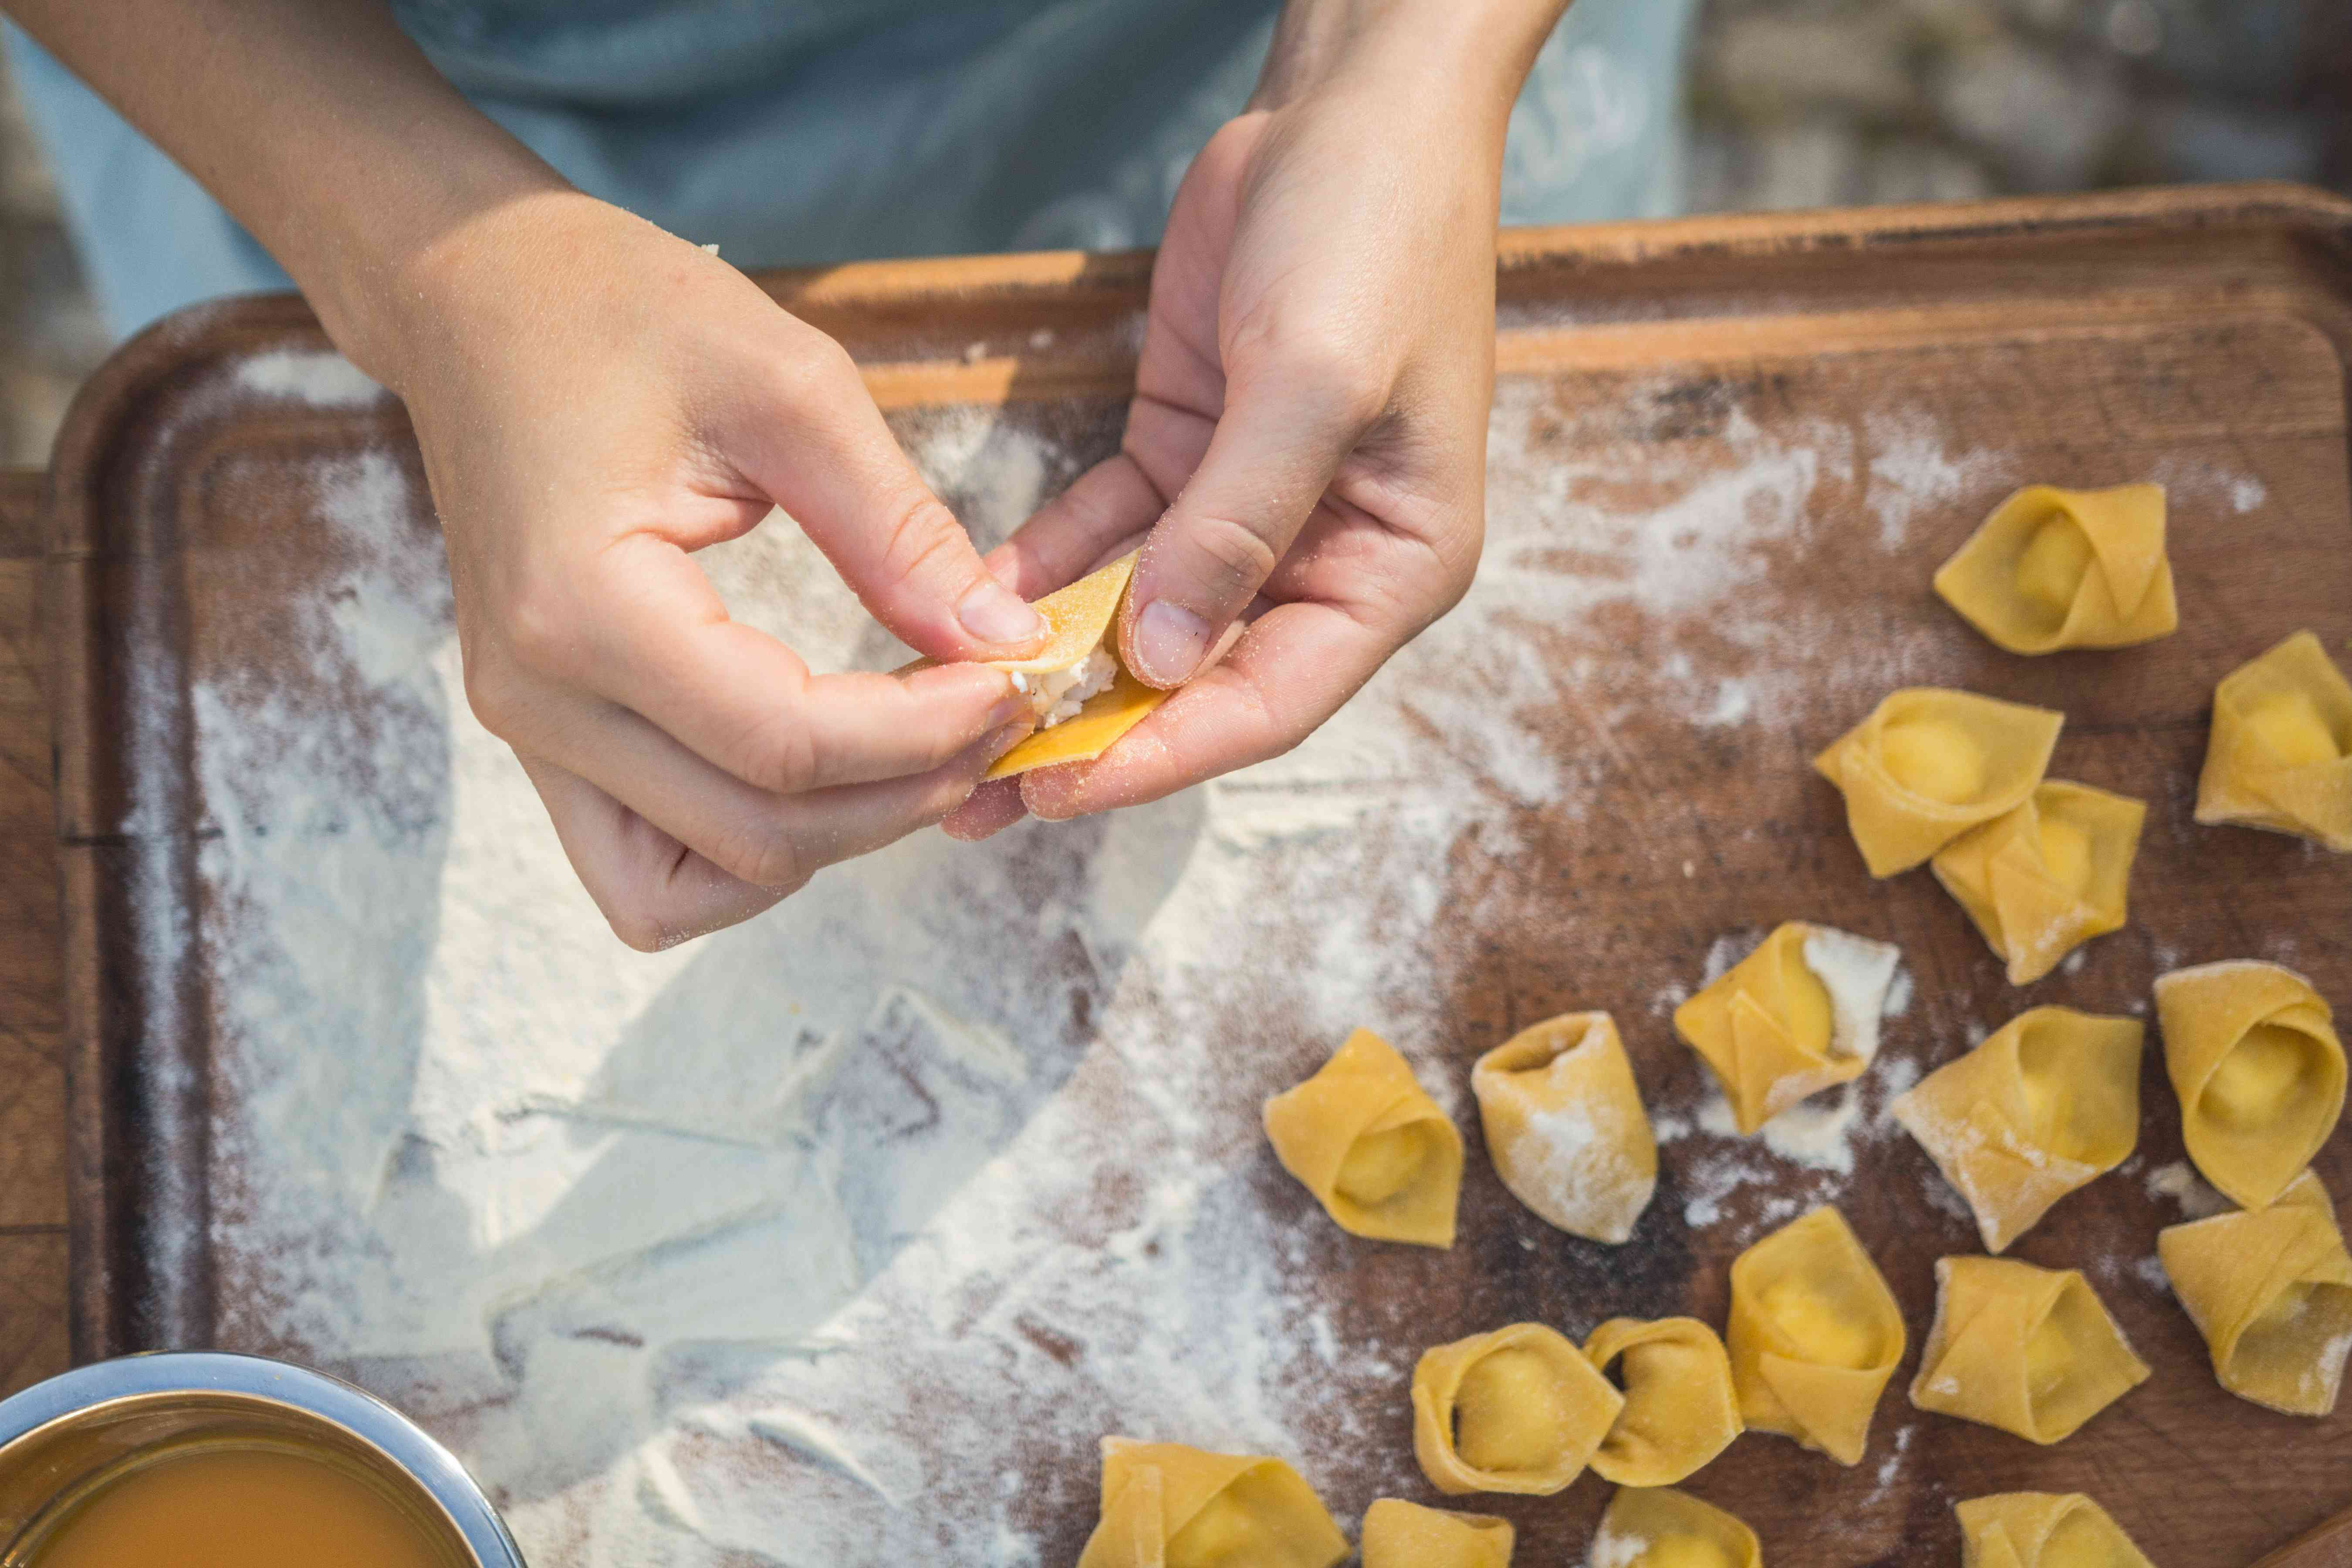 Young woman chef preparing handmade tortellini stuffed with ricotta and cheese.